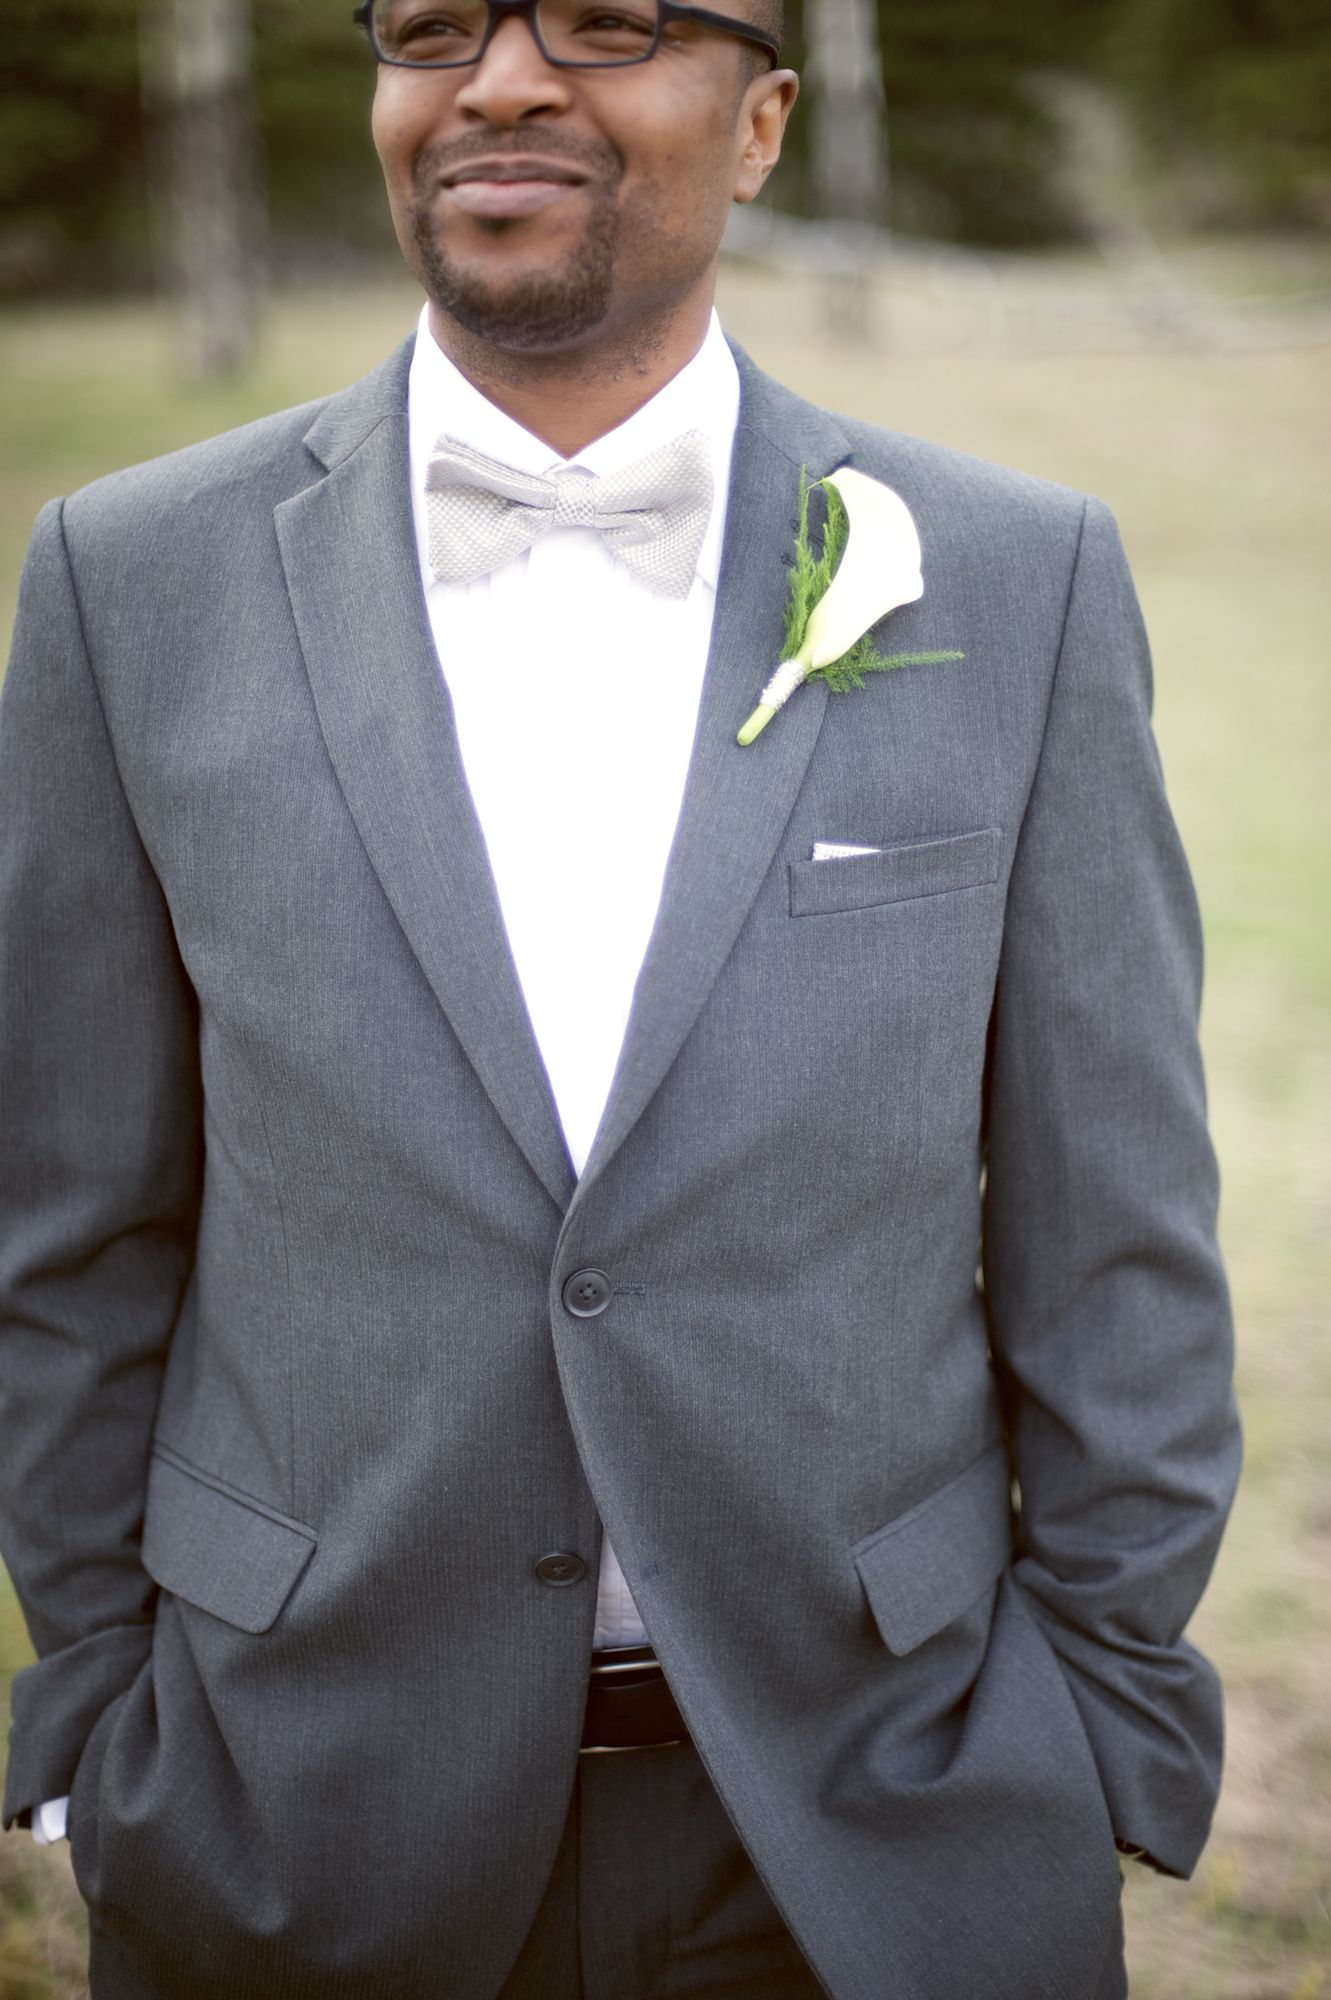 grey suit and bow tie! #wedding #fashion #suit | He Asked Me To ...